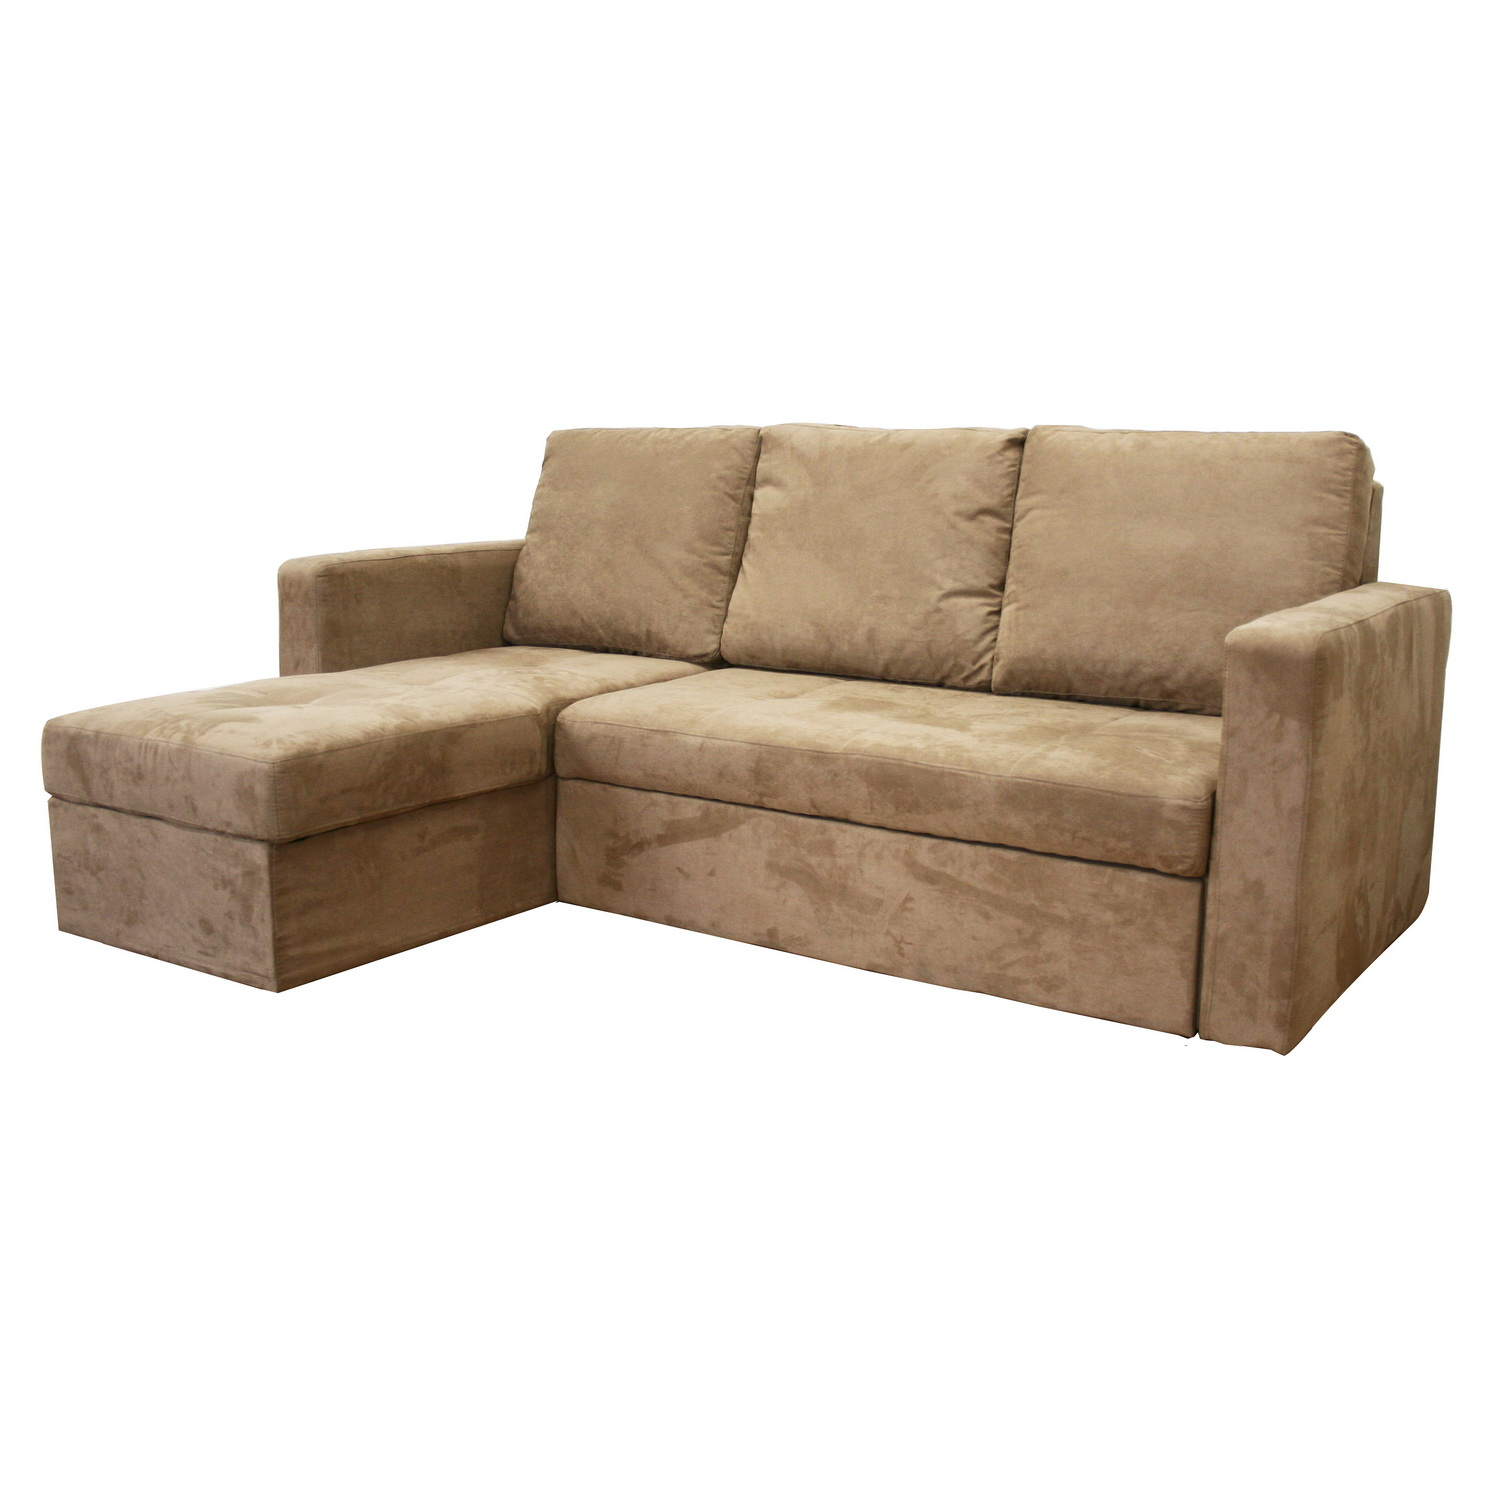 sectional sleeper sofa bed photo - 5